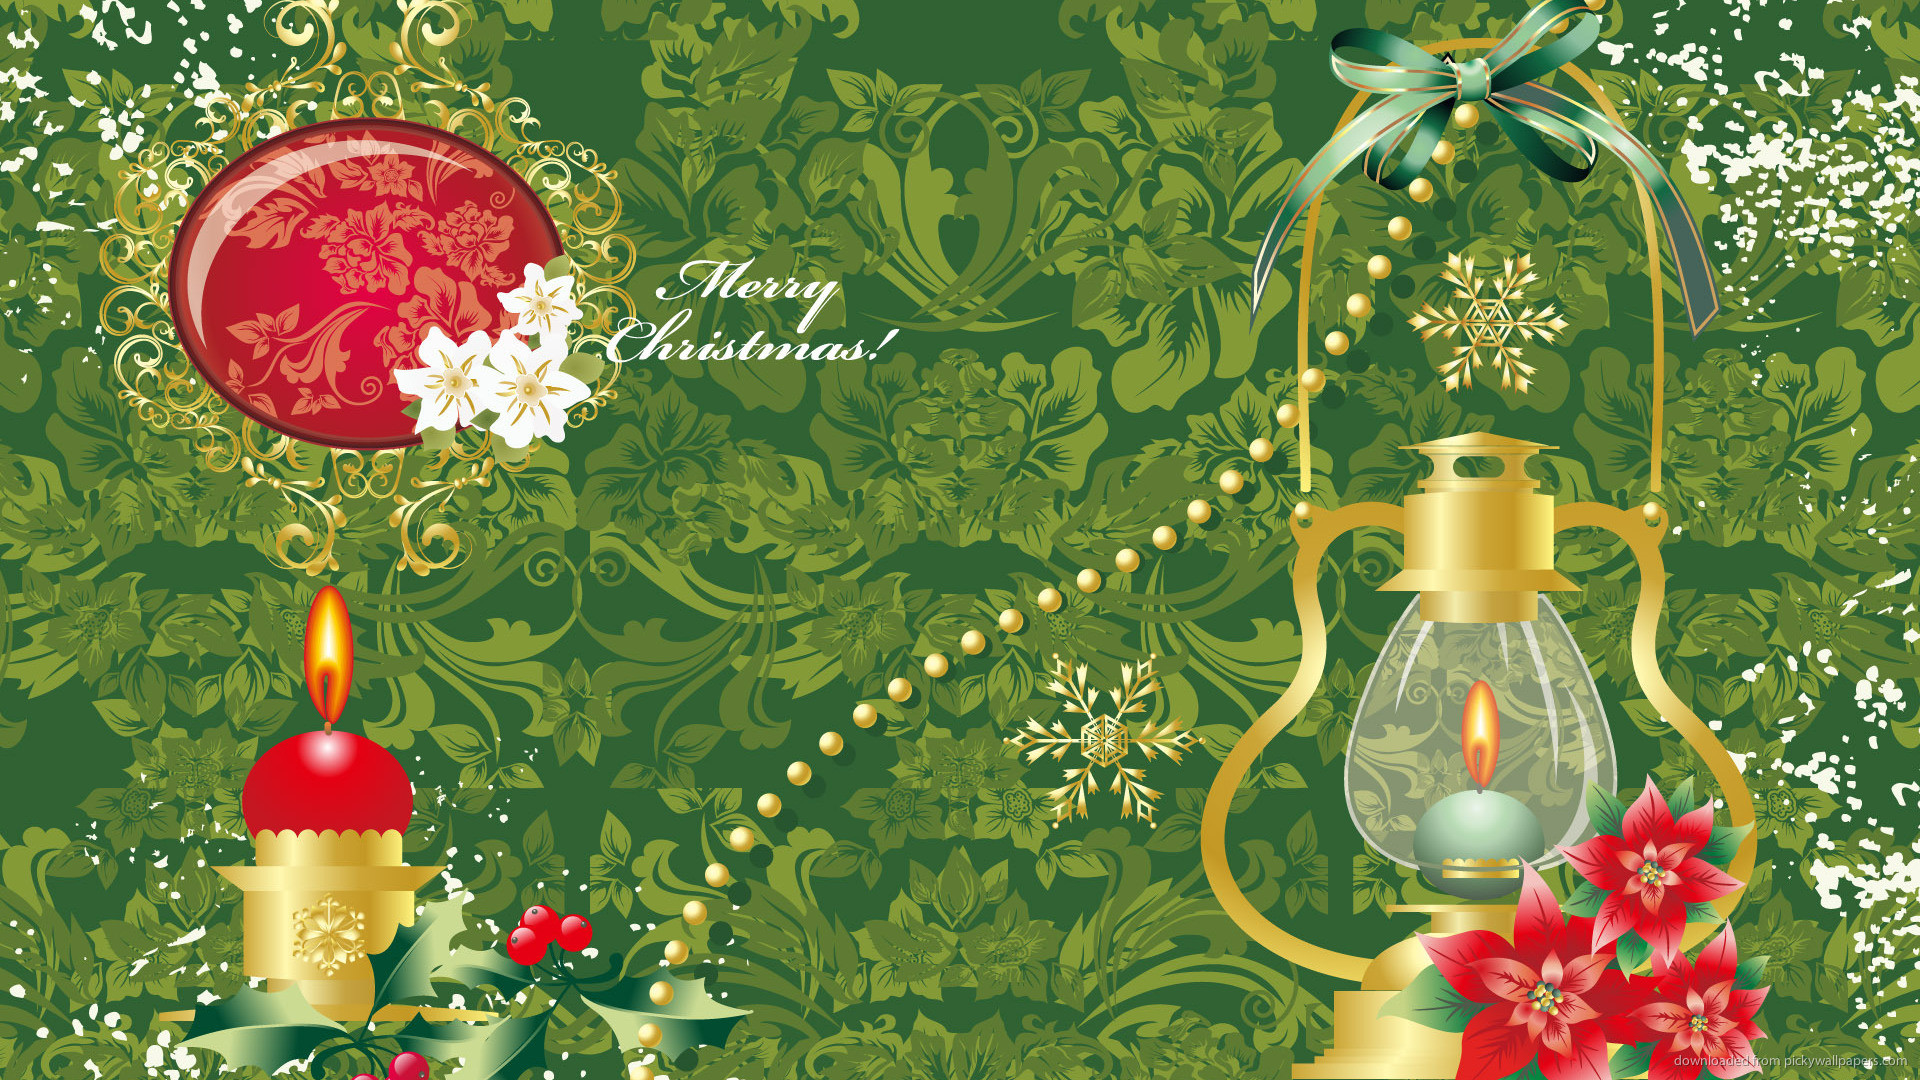 Old Fashioned Christmas Wallpaper (38+ images)